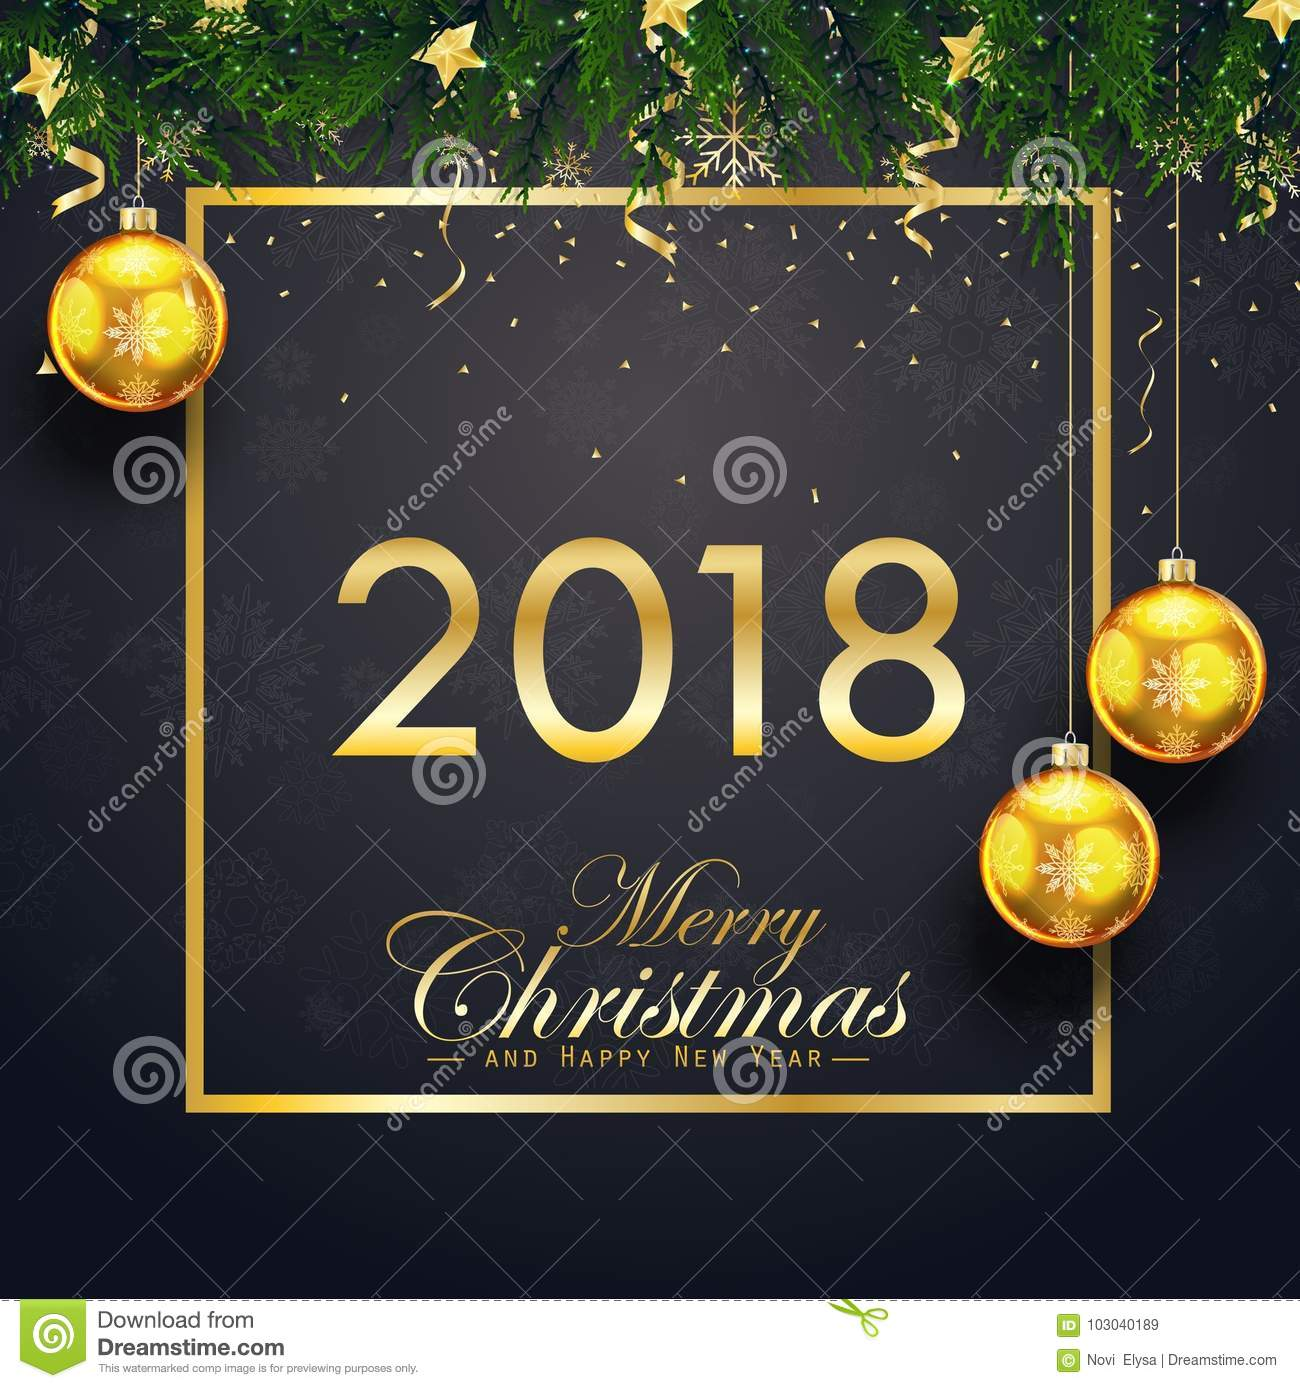 merry christmas and happy new year 2018 card with fir branches and gold christmas balls on